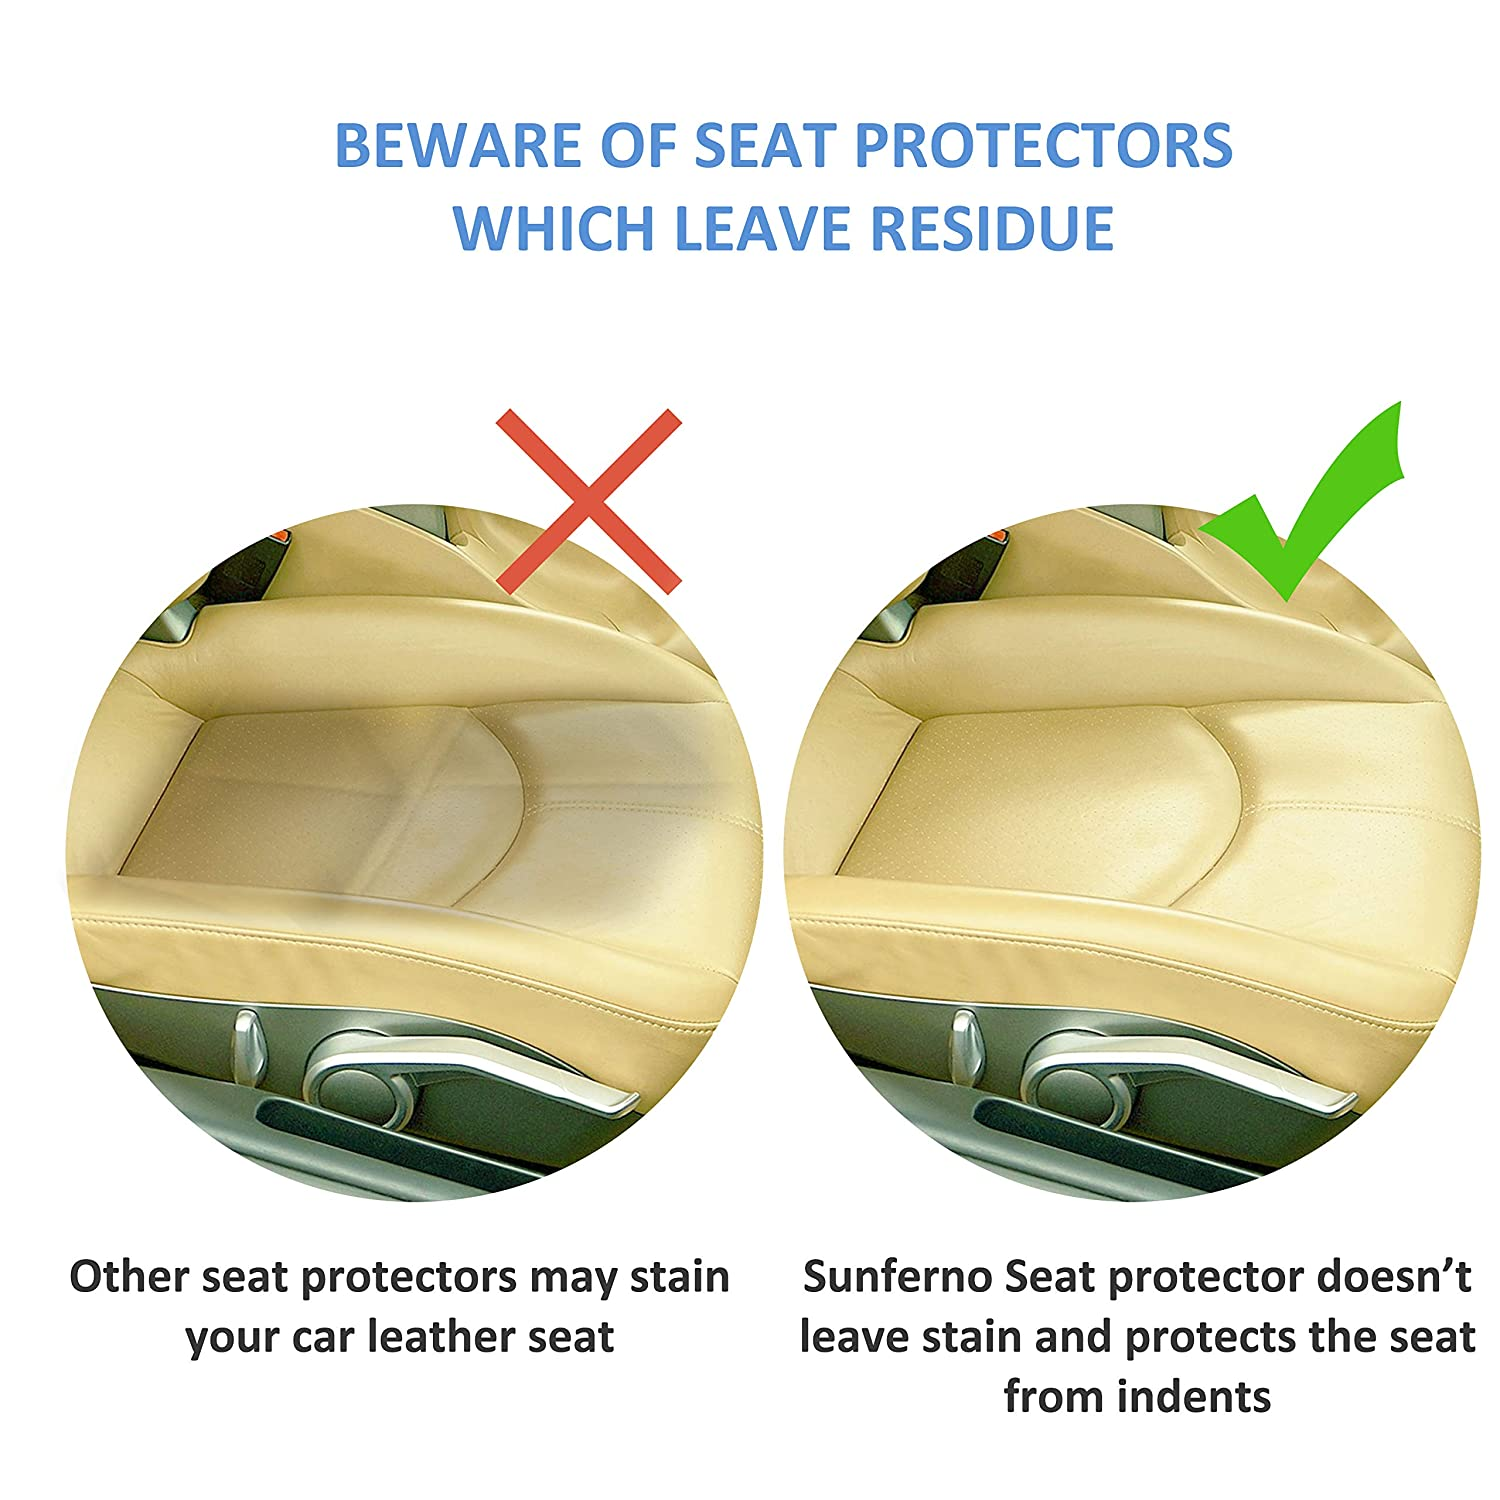 Protects Your Car Seat from Baby Car Seat Indents, Sunferno Car Seat Protector